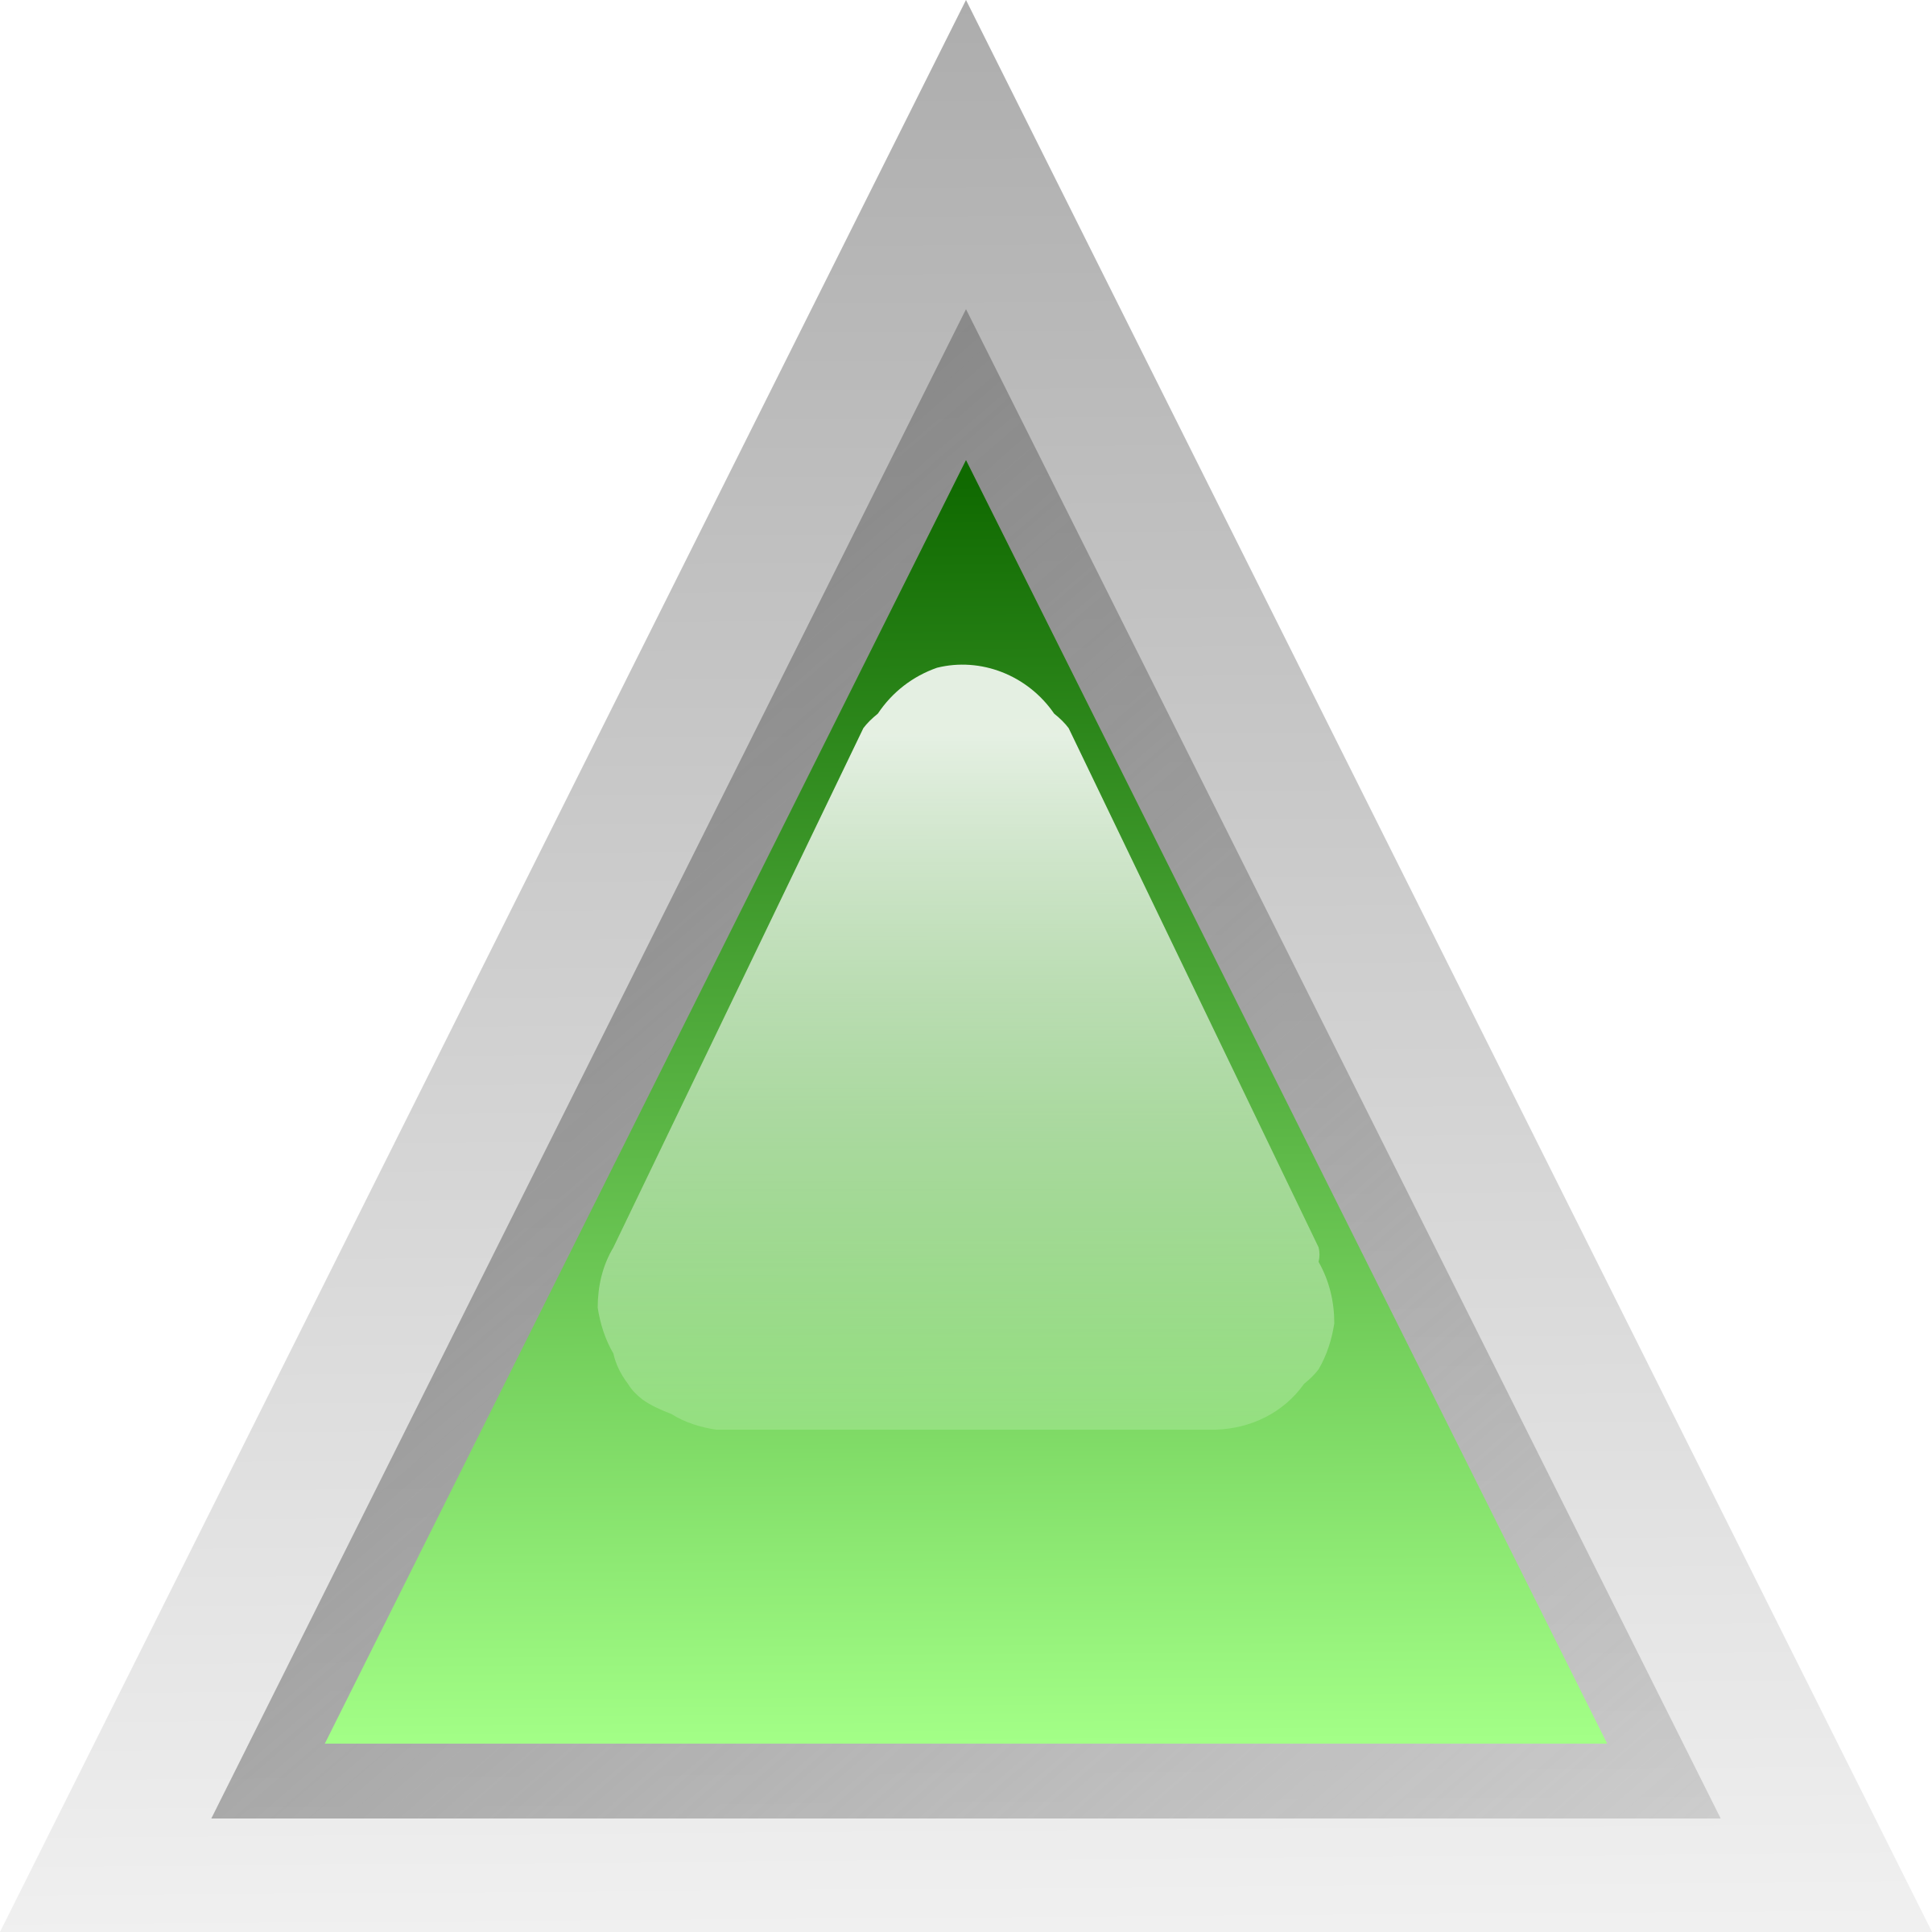 led triangular green by Anonymous